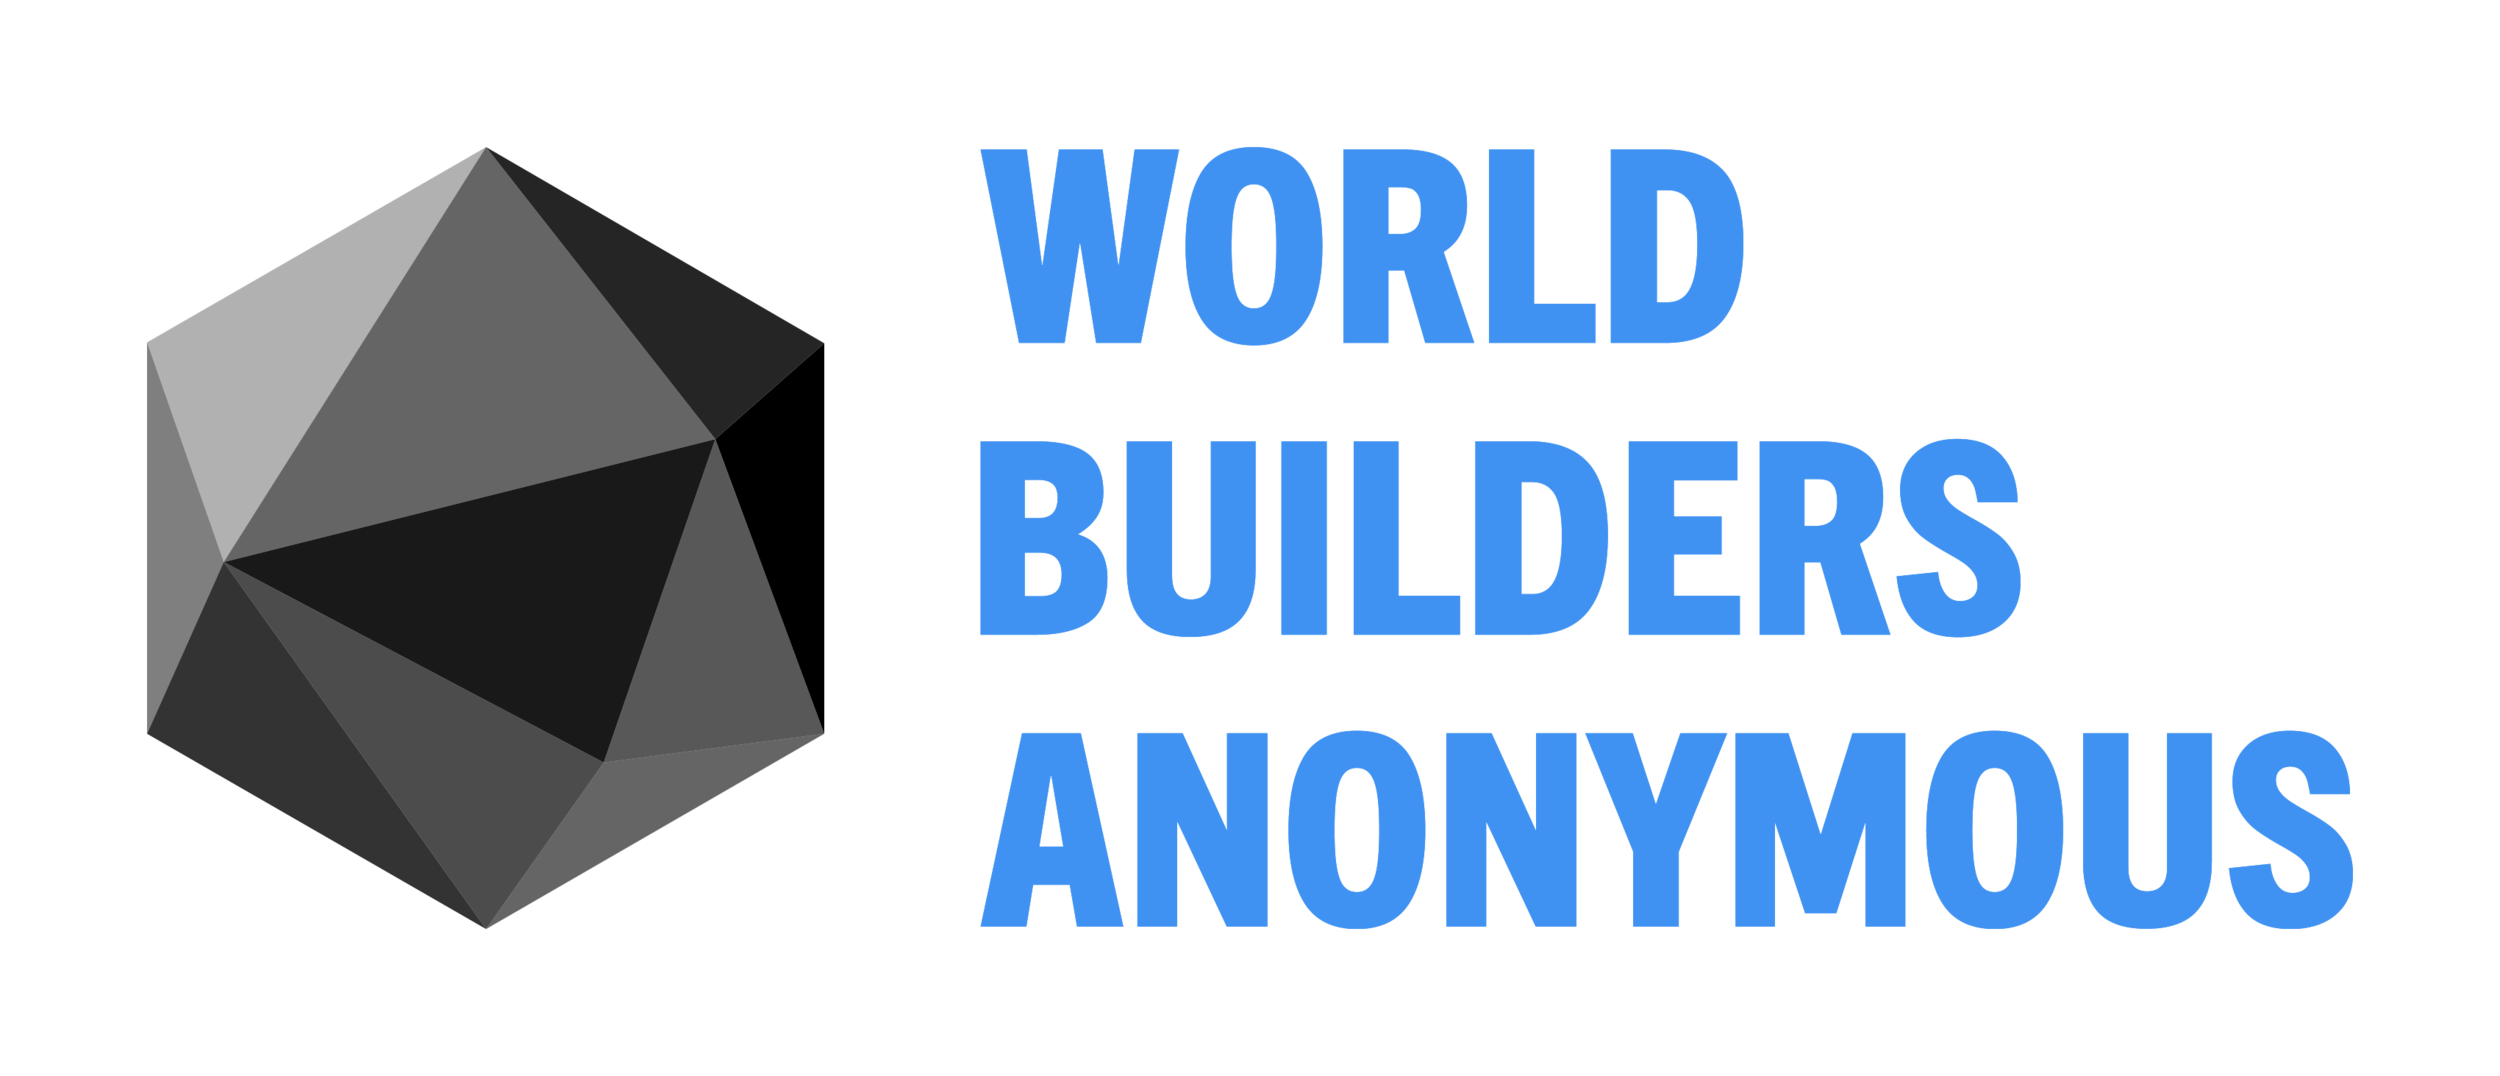 World Builders Anonymous - World Builders Anonymous is a podcast created by Vito and John Gutilla to document their journey to becoming published fantasy authors. In weekly episodes, they update one another on the progress of their novels, as well as discussing any difficulties or ideas they had during the week. Mix in some world building exercises and some accidentally educational banter, and you have World builders Anonymous.